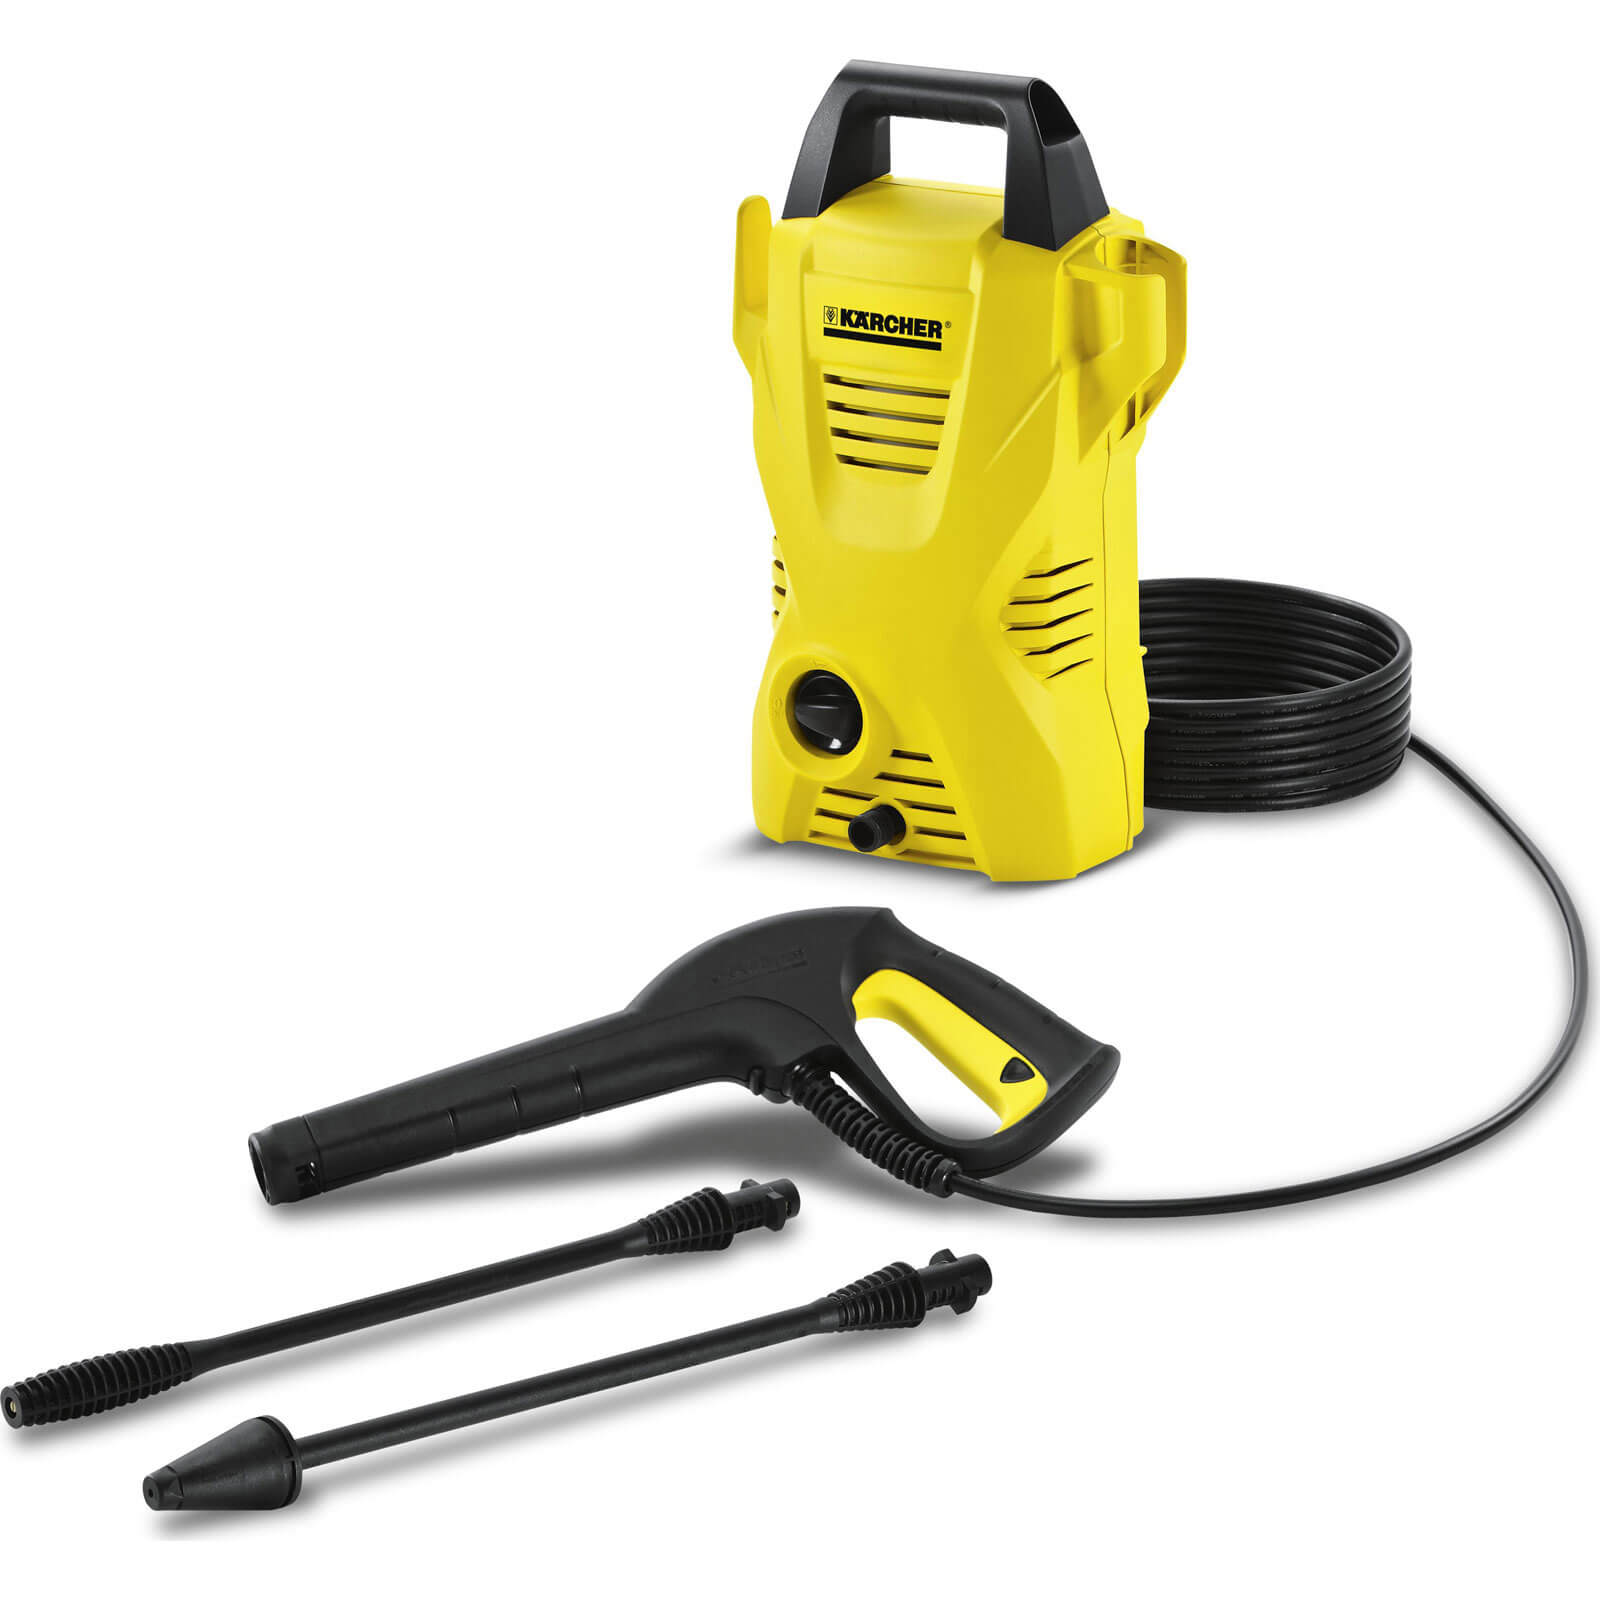 Karcher K2 Compact Pressure Washer 110 Bar 1400w 240v